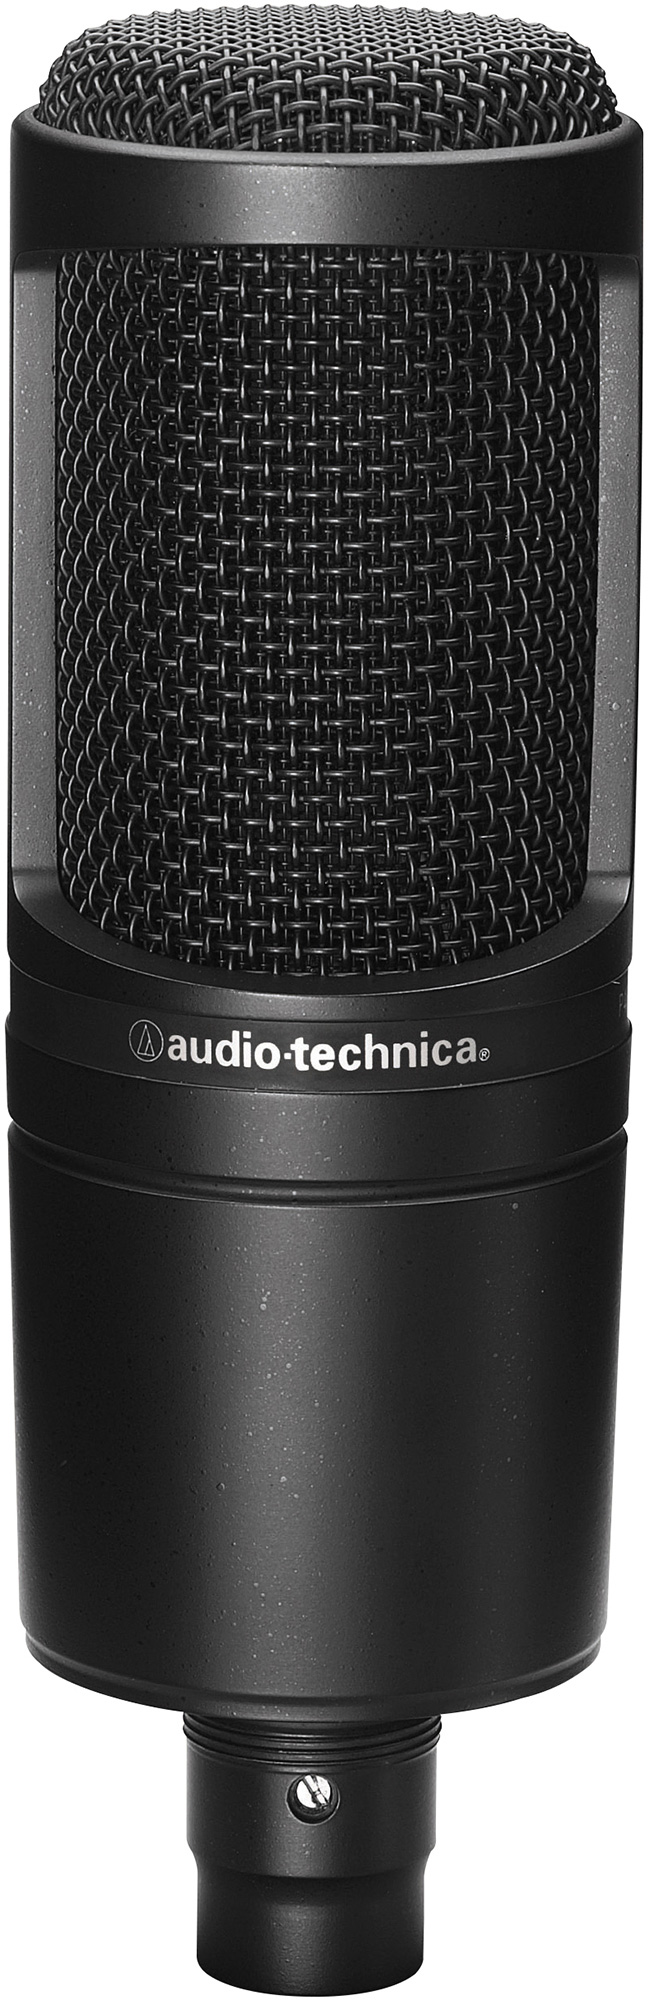 audio technica at2020 cardioid condenser microphone with stand mount. Black Bedroom Furniture Sets. Home Design Ideas